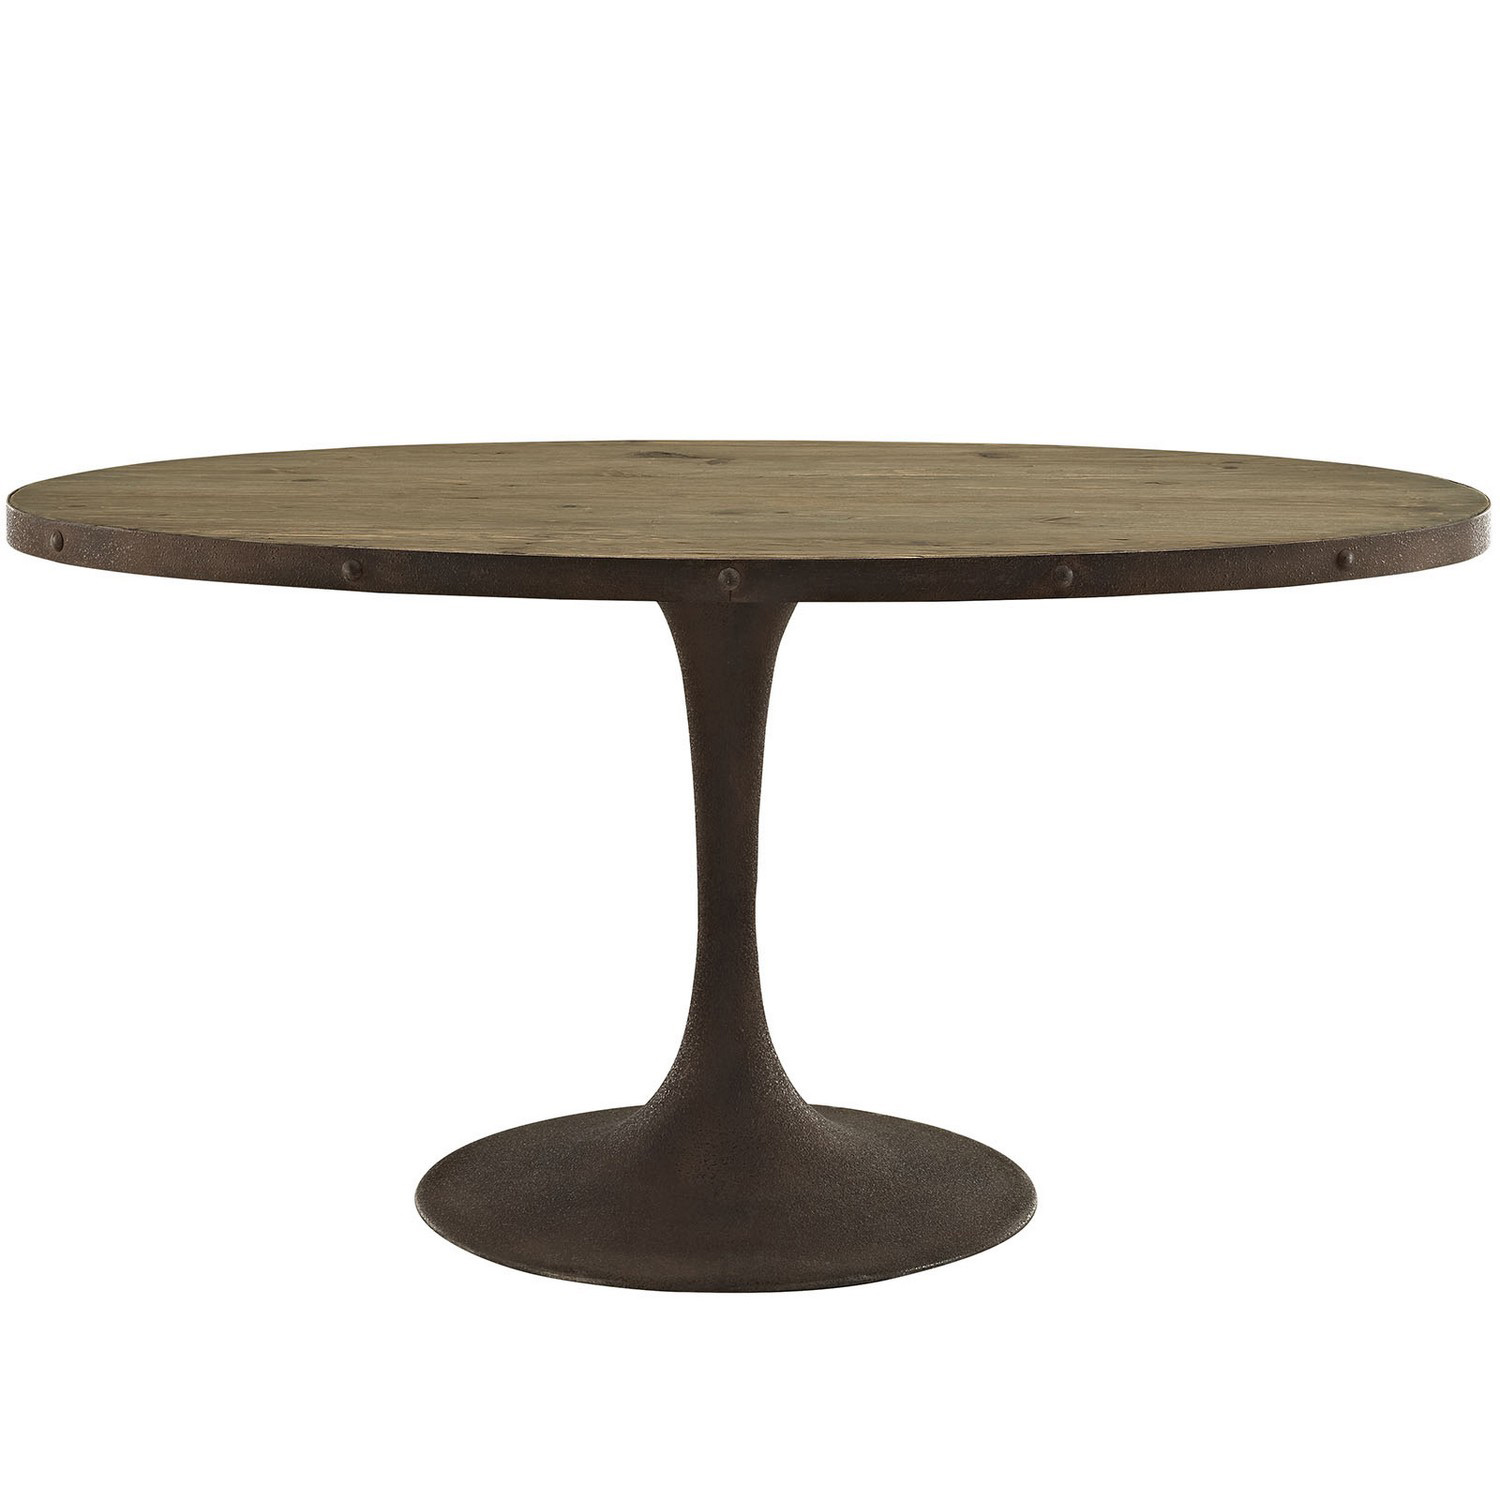 Modway Drive 60-inch Oval Wood Top Dining Table - Brown